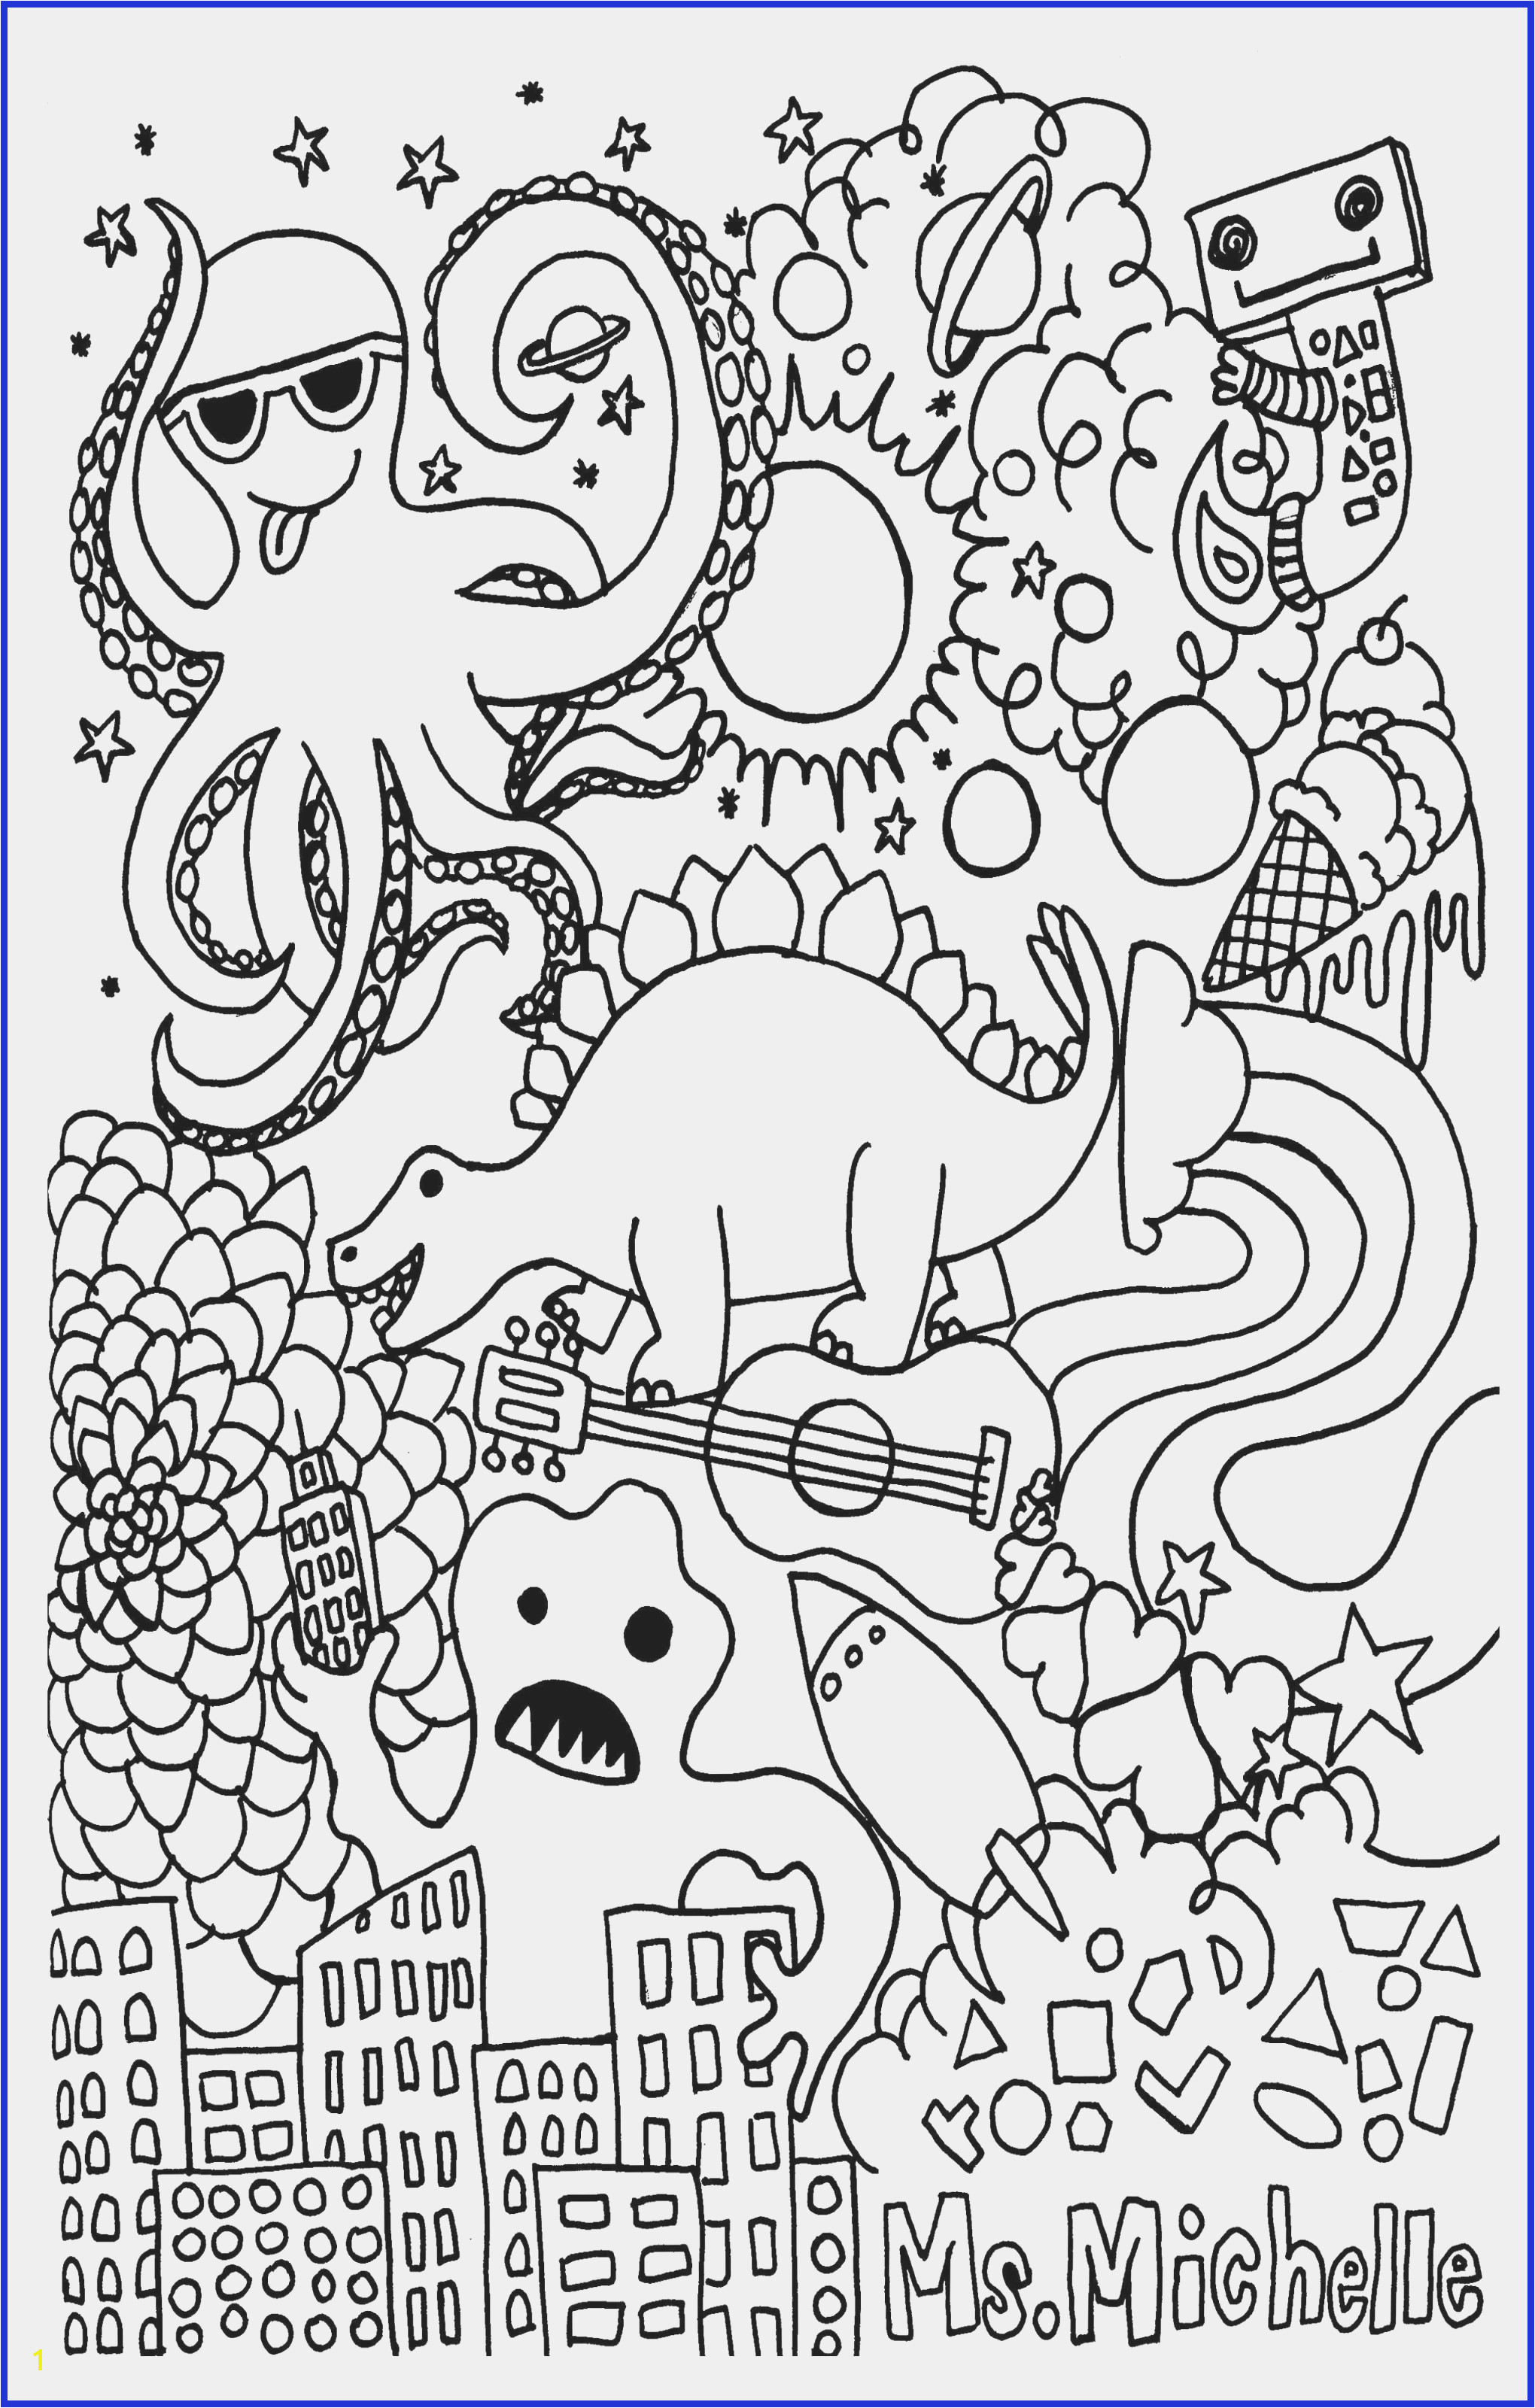 Mermaid Coloring Pages Free Coloring Pages for Halloween Unique Best Coloring Page Adult Od 6r Mermaid Coloring Pages Sample thephotosync Happy Birthday